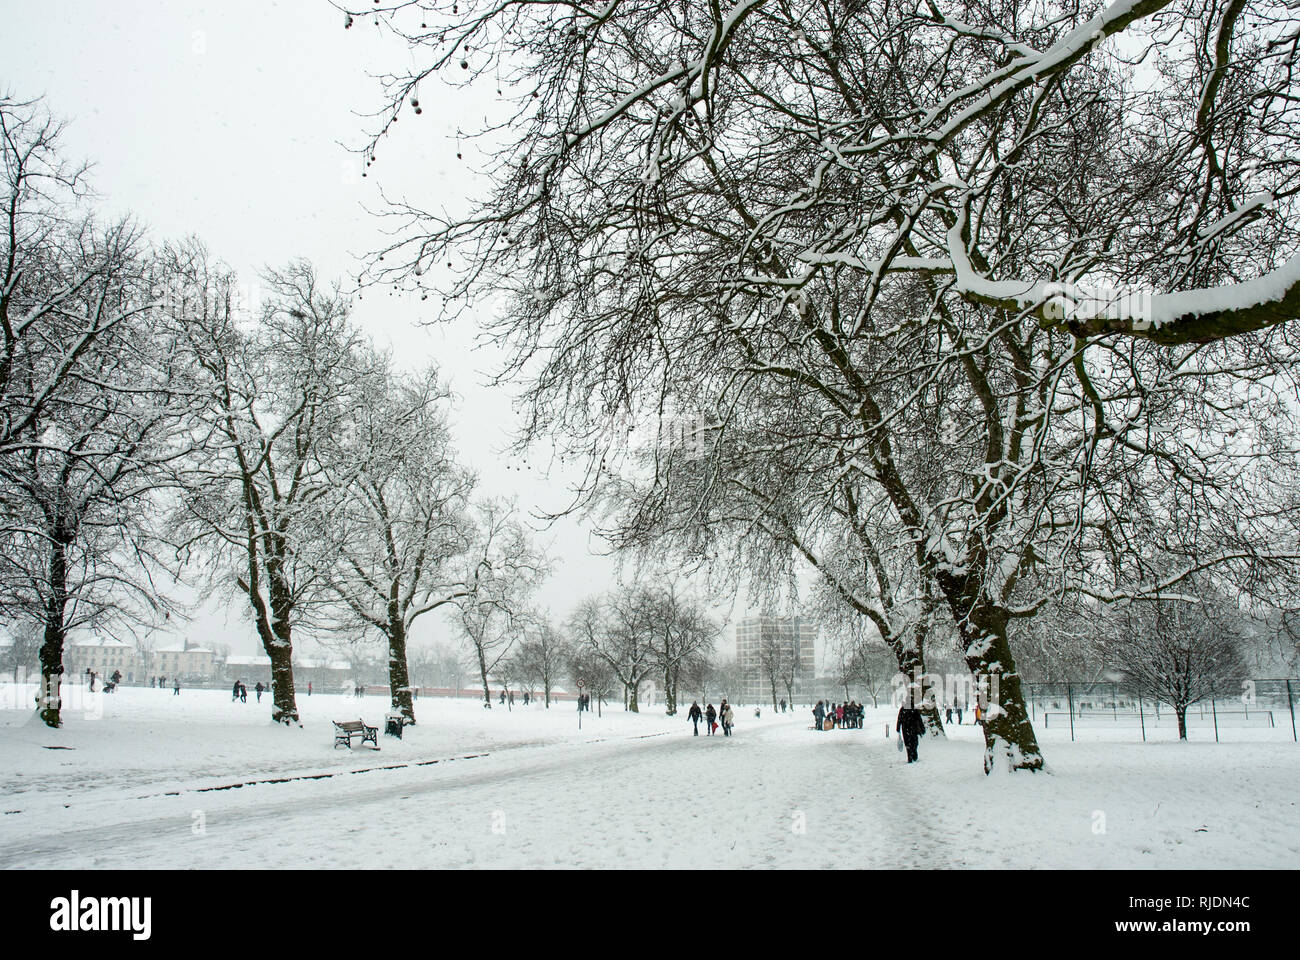 Finsbury Park, Haringey, London. Actively snowing with trees and park covered in snow as people in the distance walk and have fun. - Stock Image